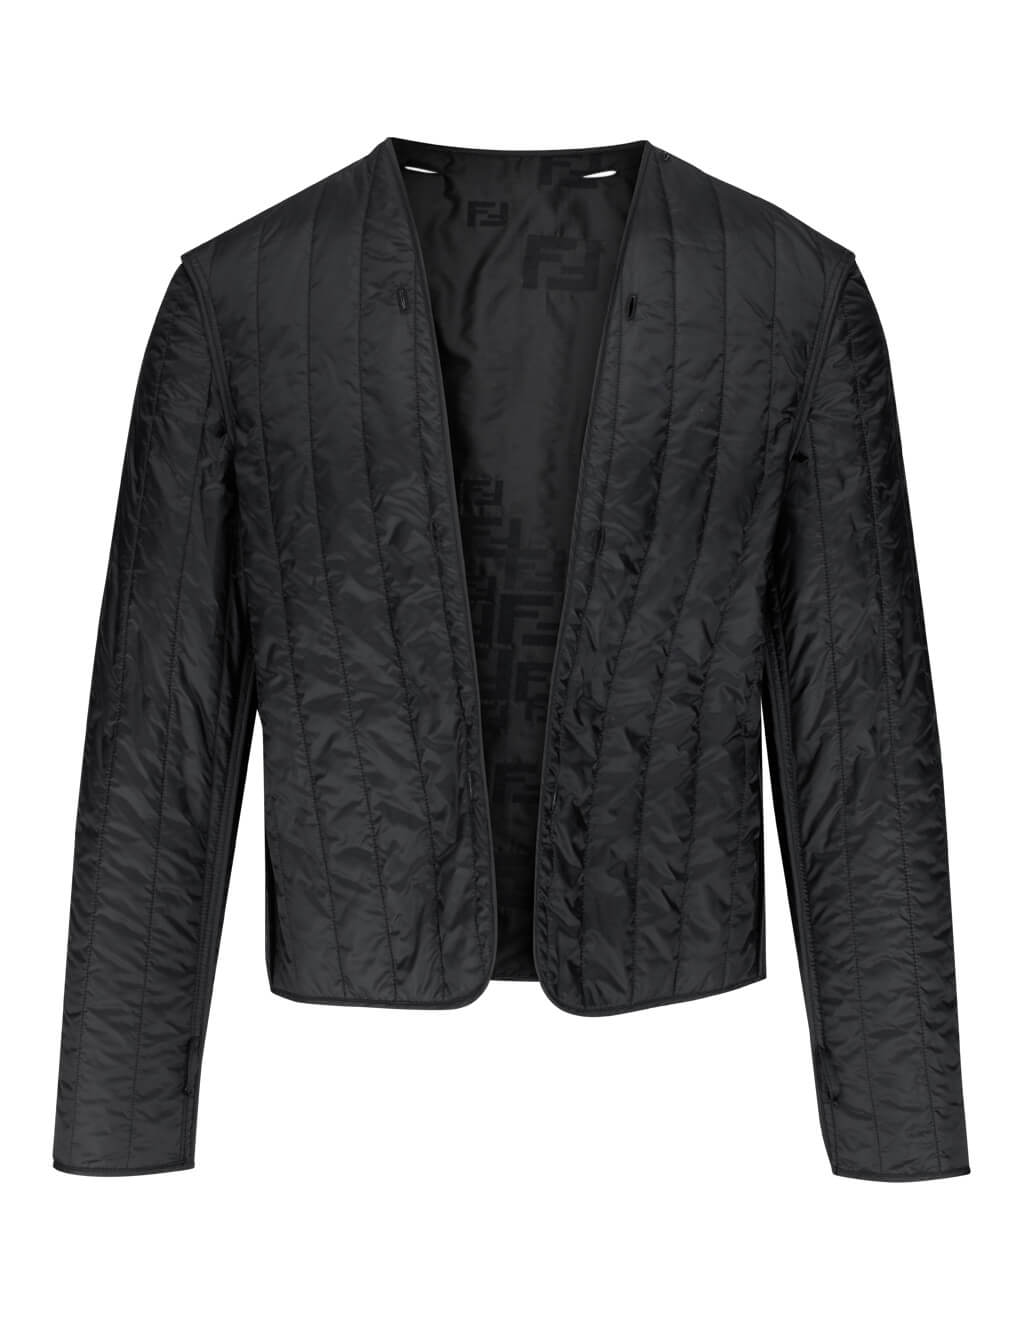 Fendi Men's Black Organza FF Jacket FW0430AA8IF0QA1